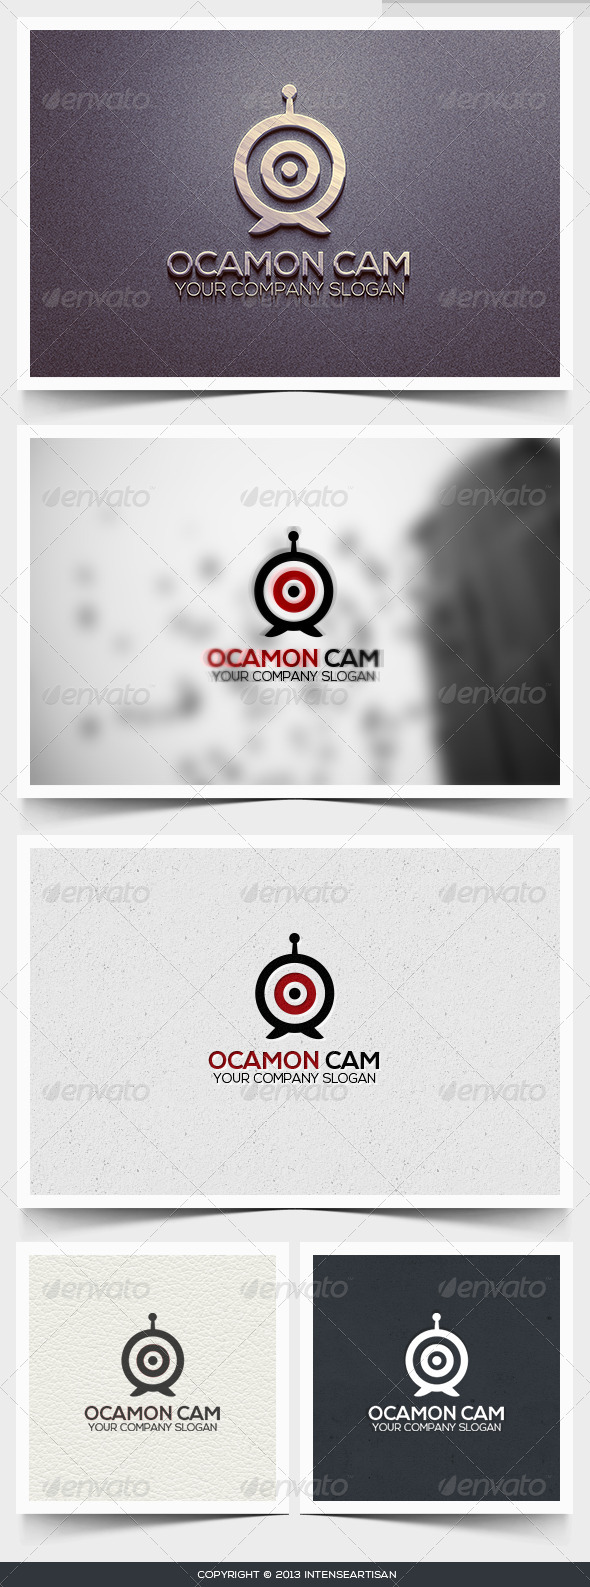 Ocamon Cam Logo Template - Objects Logo Templates